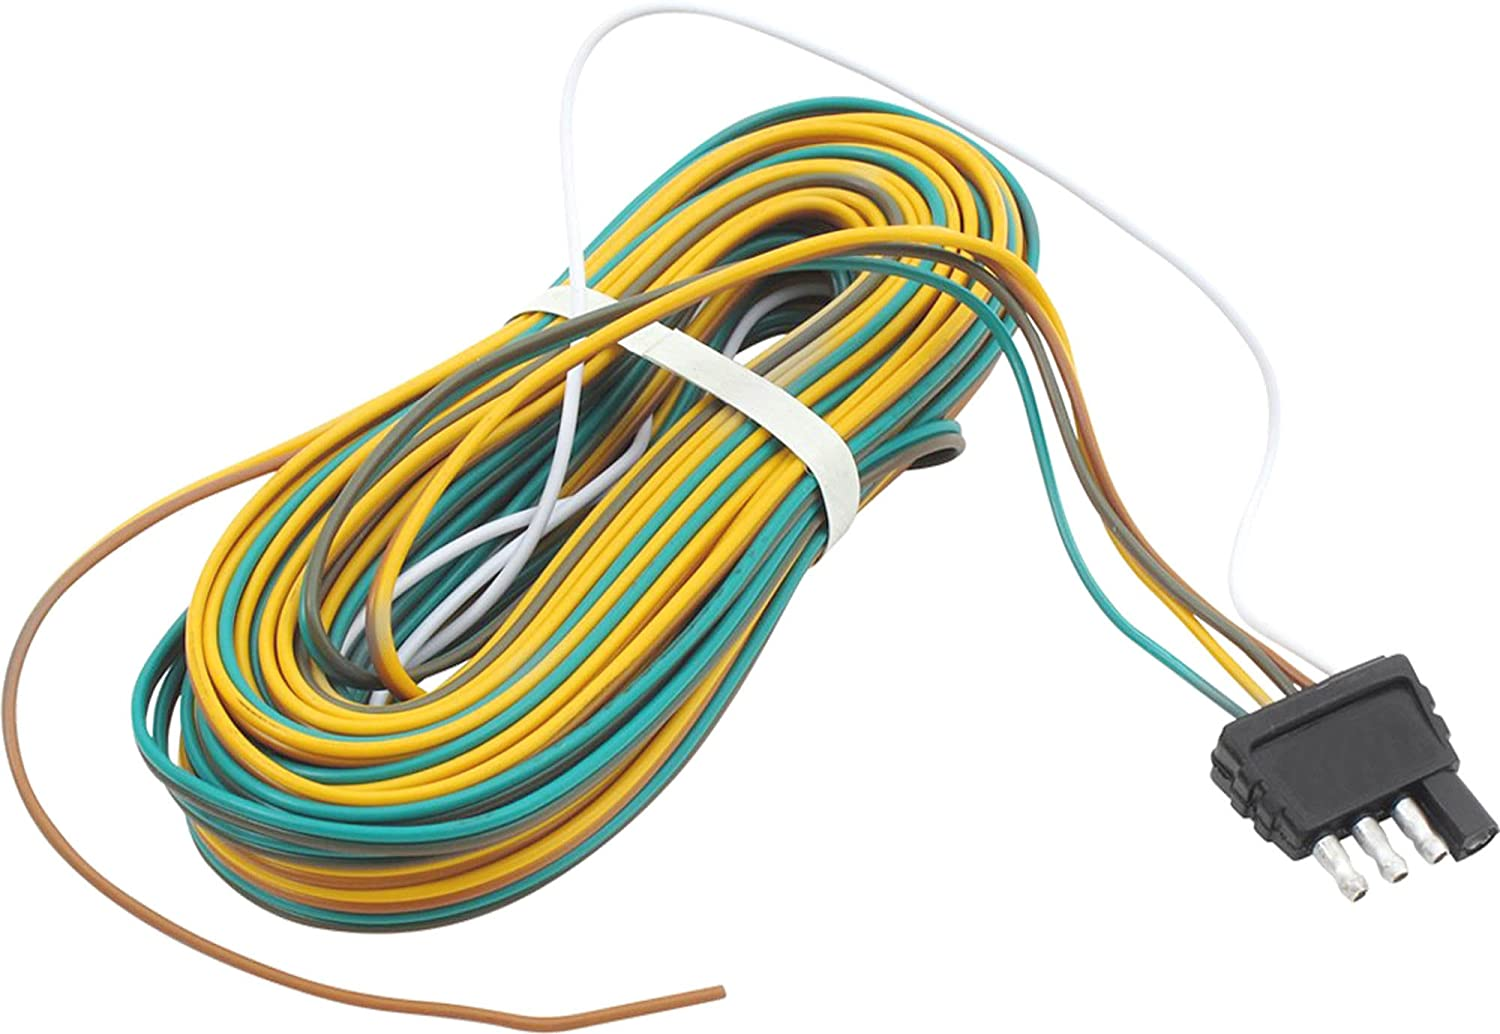 Trailer Wire Harness 25 Feet 4 Way Flat Plug Automotive Quick Disconnect